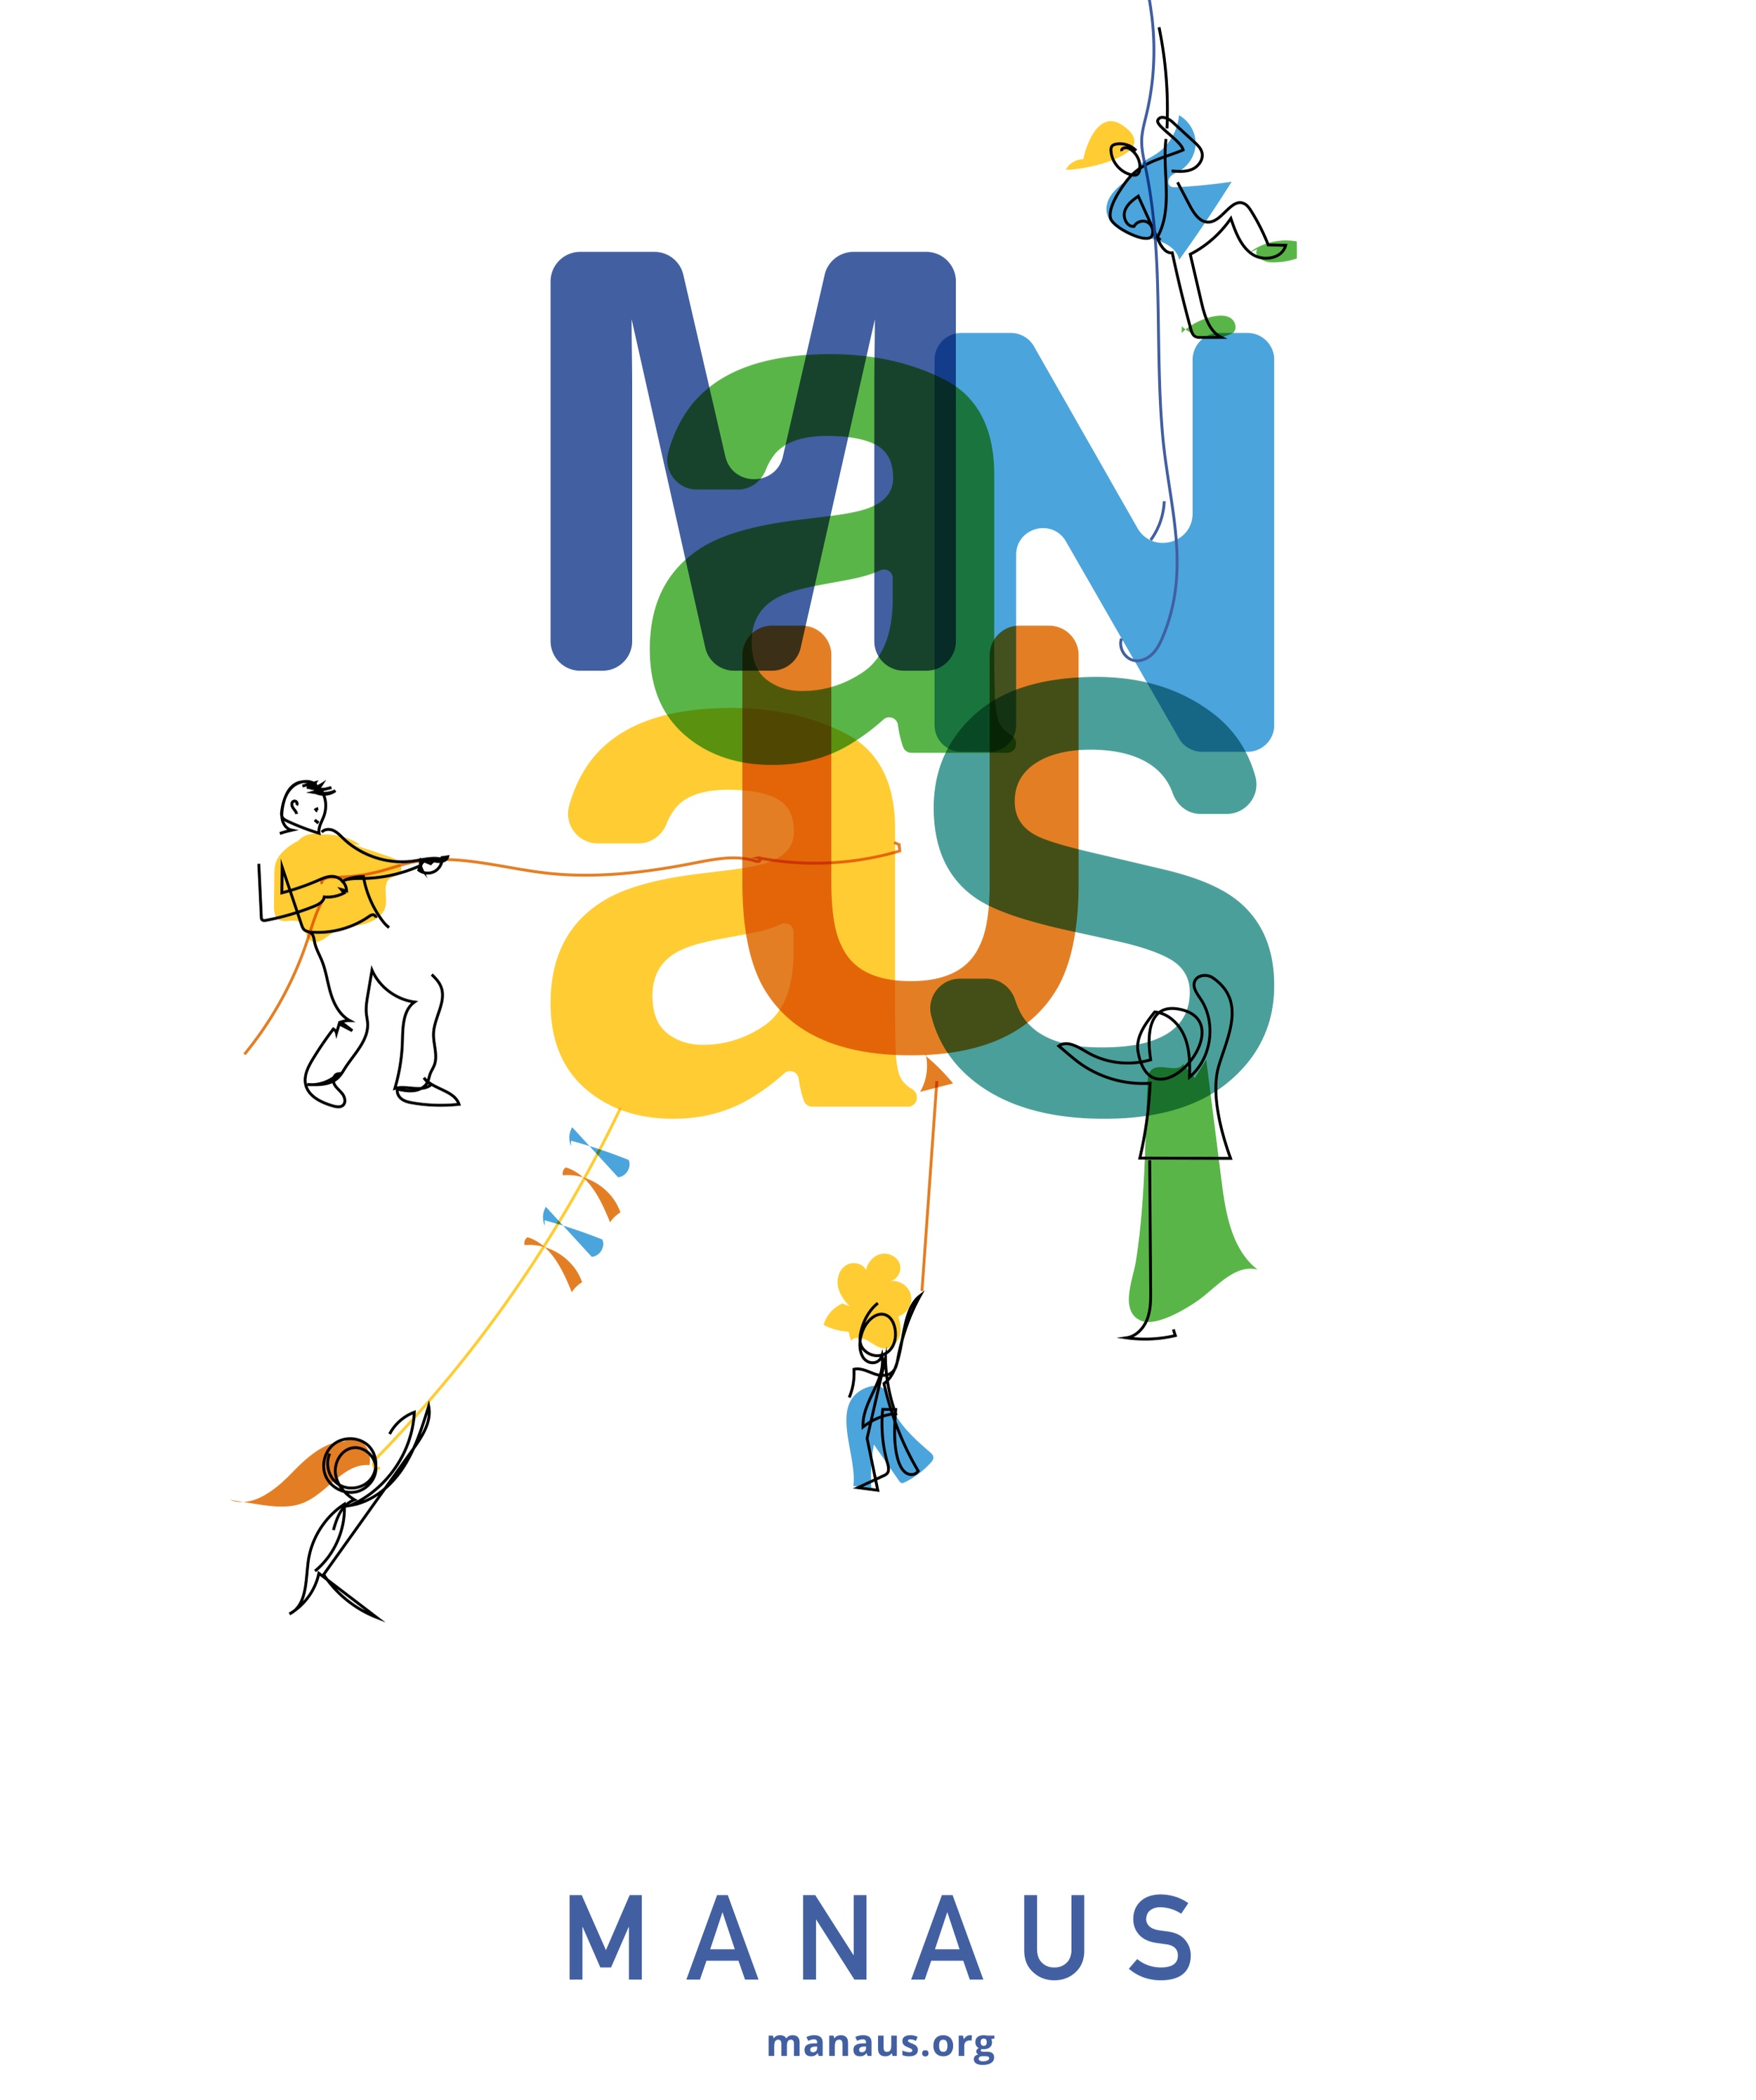 MANAUS_+Design+Graphics_COVER.ai.jpg